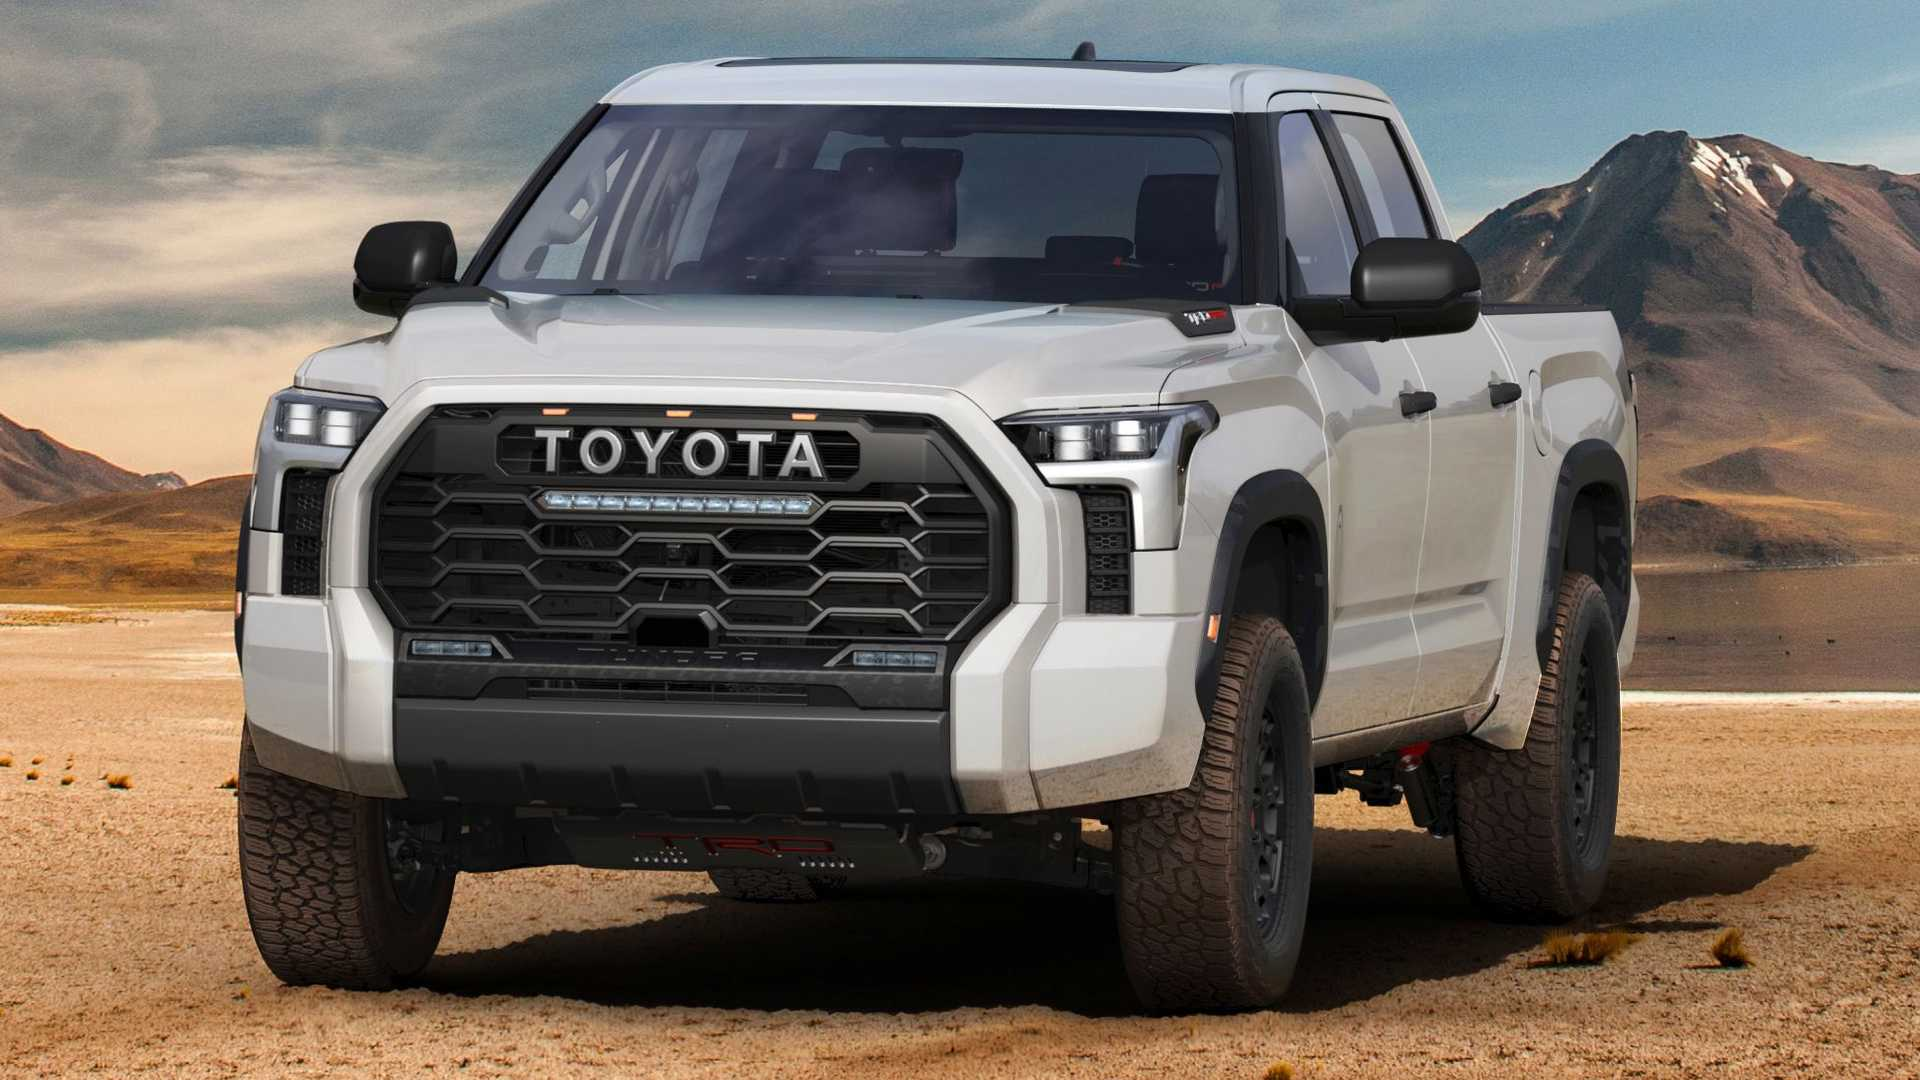 No V8: Toyota Has Released The Data On The New Tundra And You Can't Buy Eight Cylinders If You Try